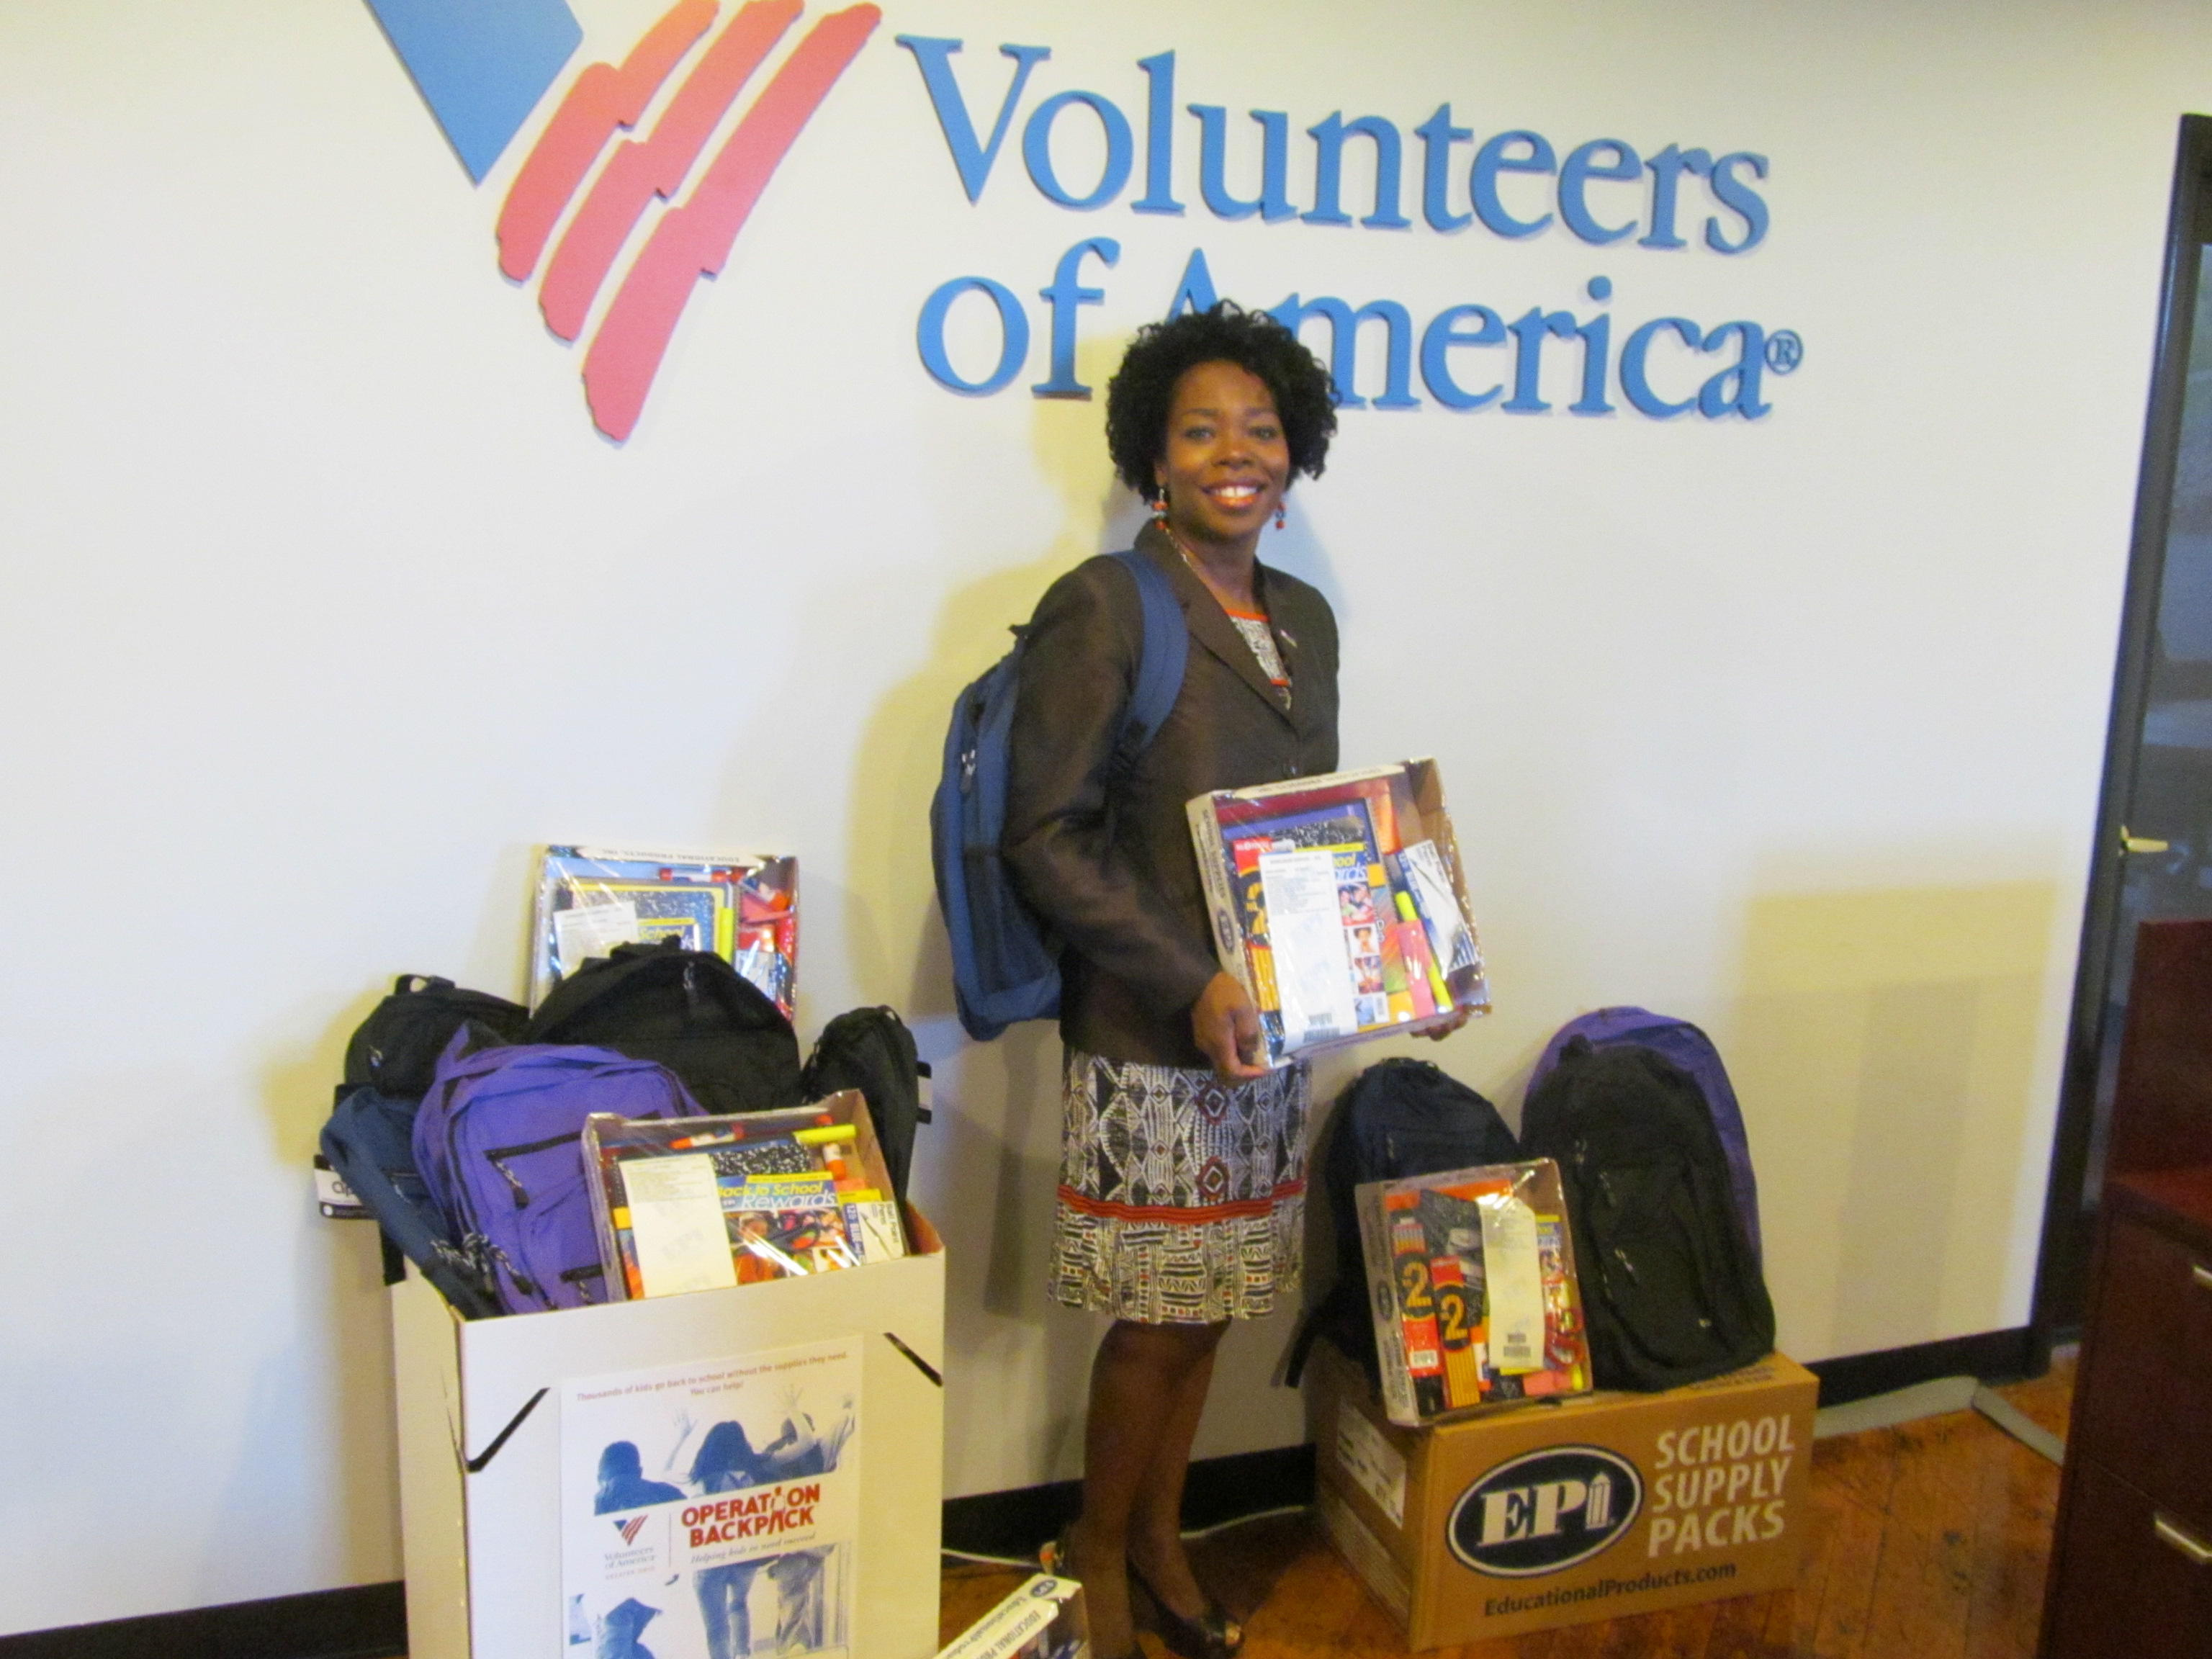 Volunteers of America Gives Confidence to Children in Need ...